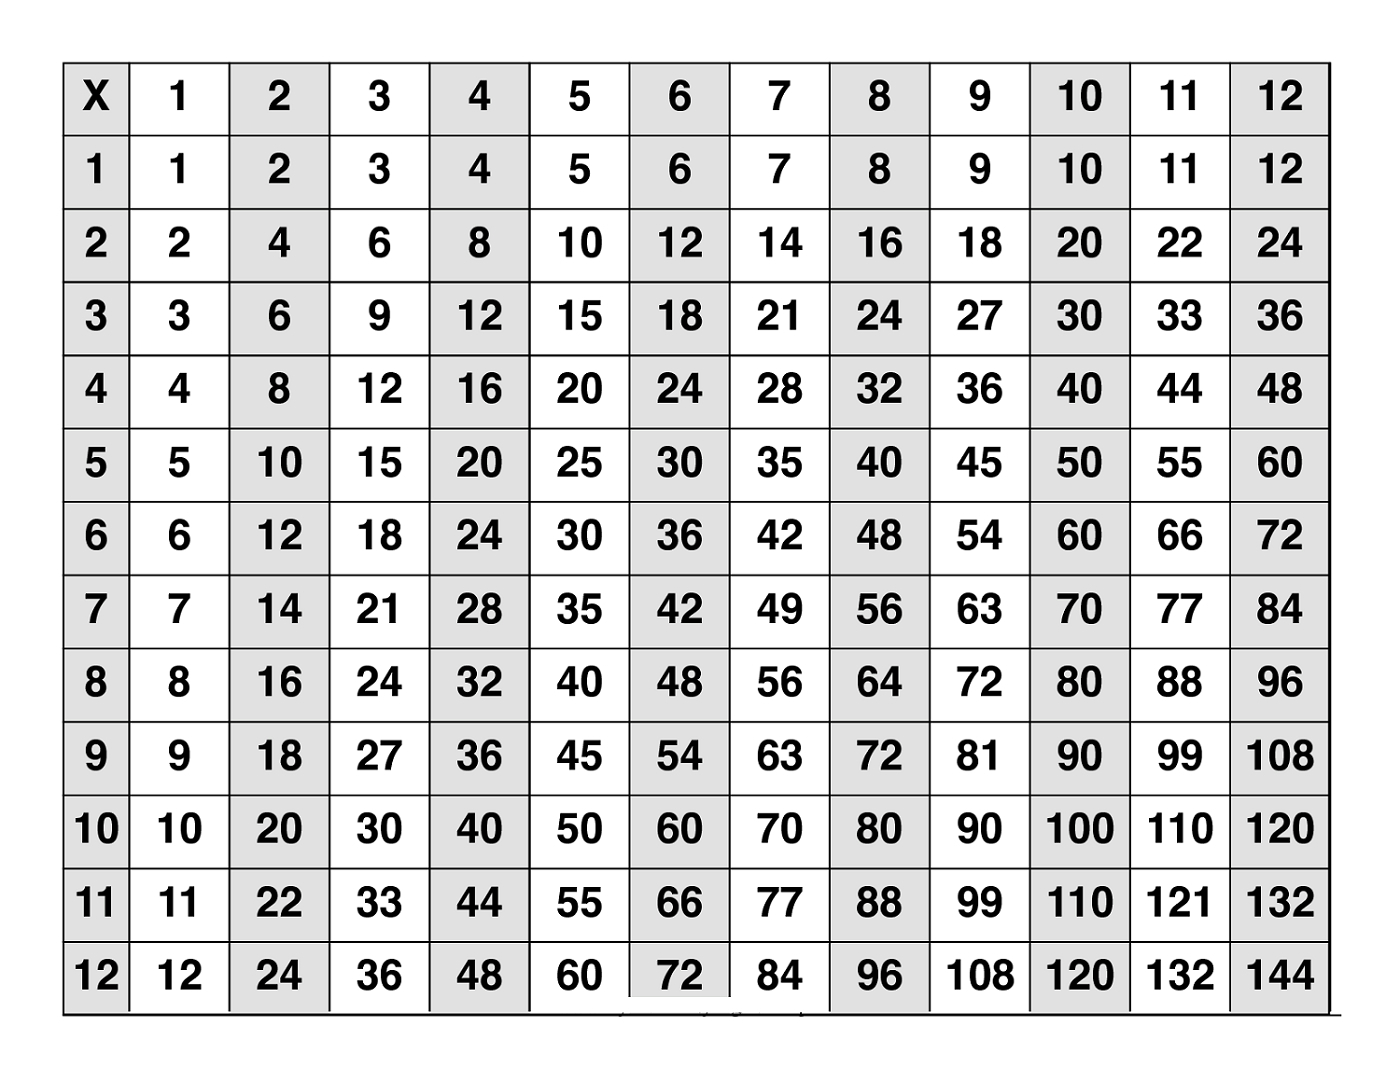 Large Multiplication Table For Students | Loving Printable regarding Printable Multiplication Table 25X25